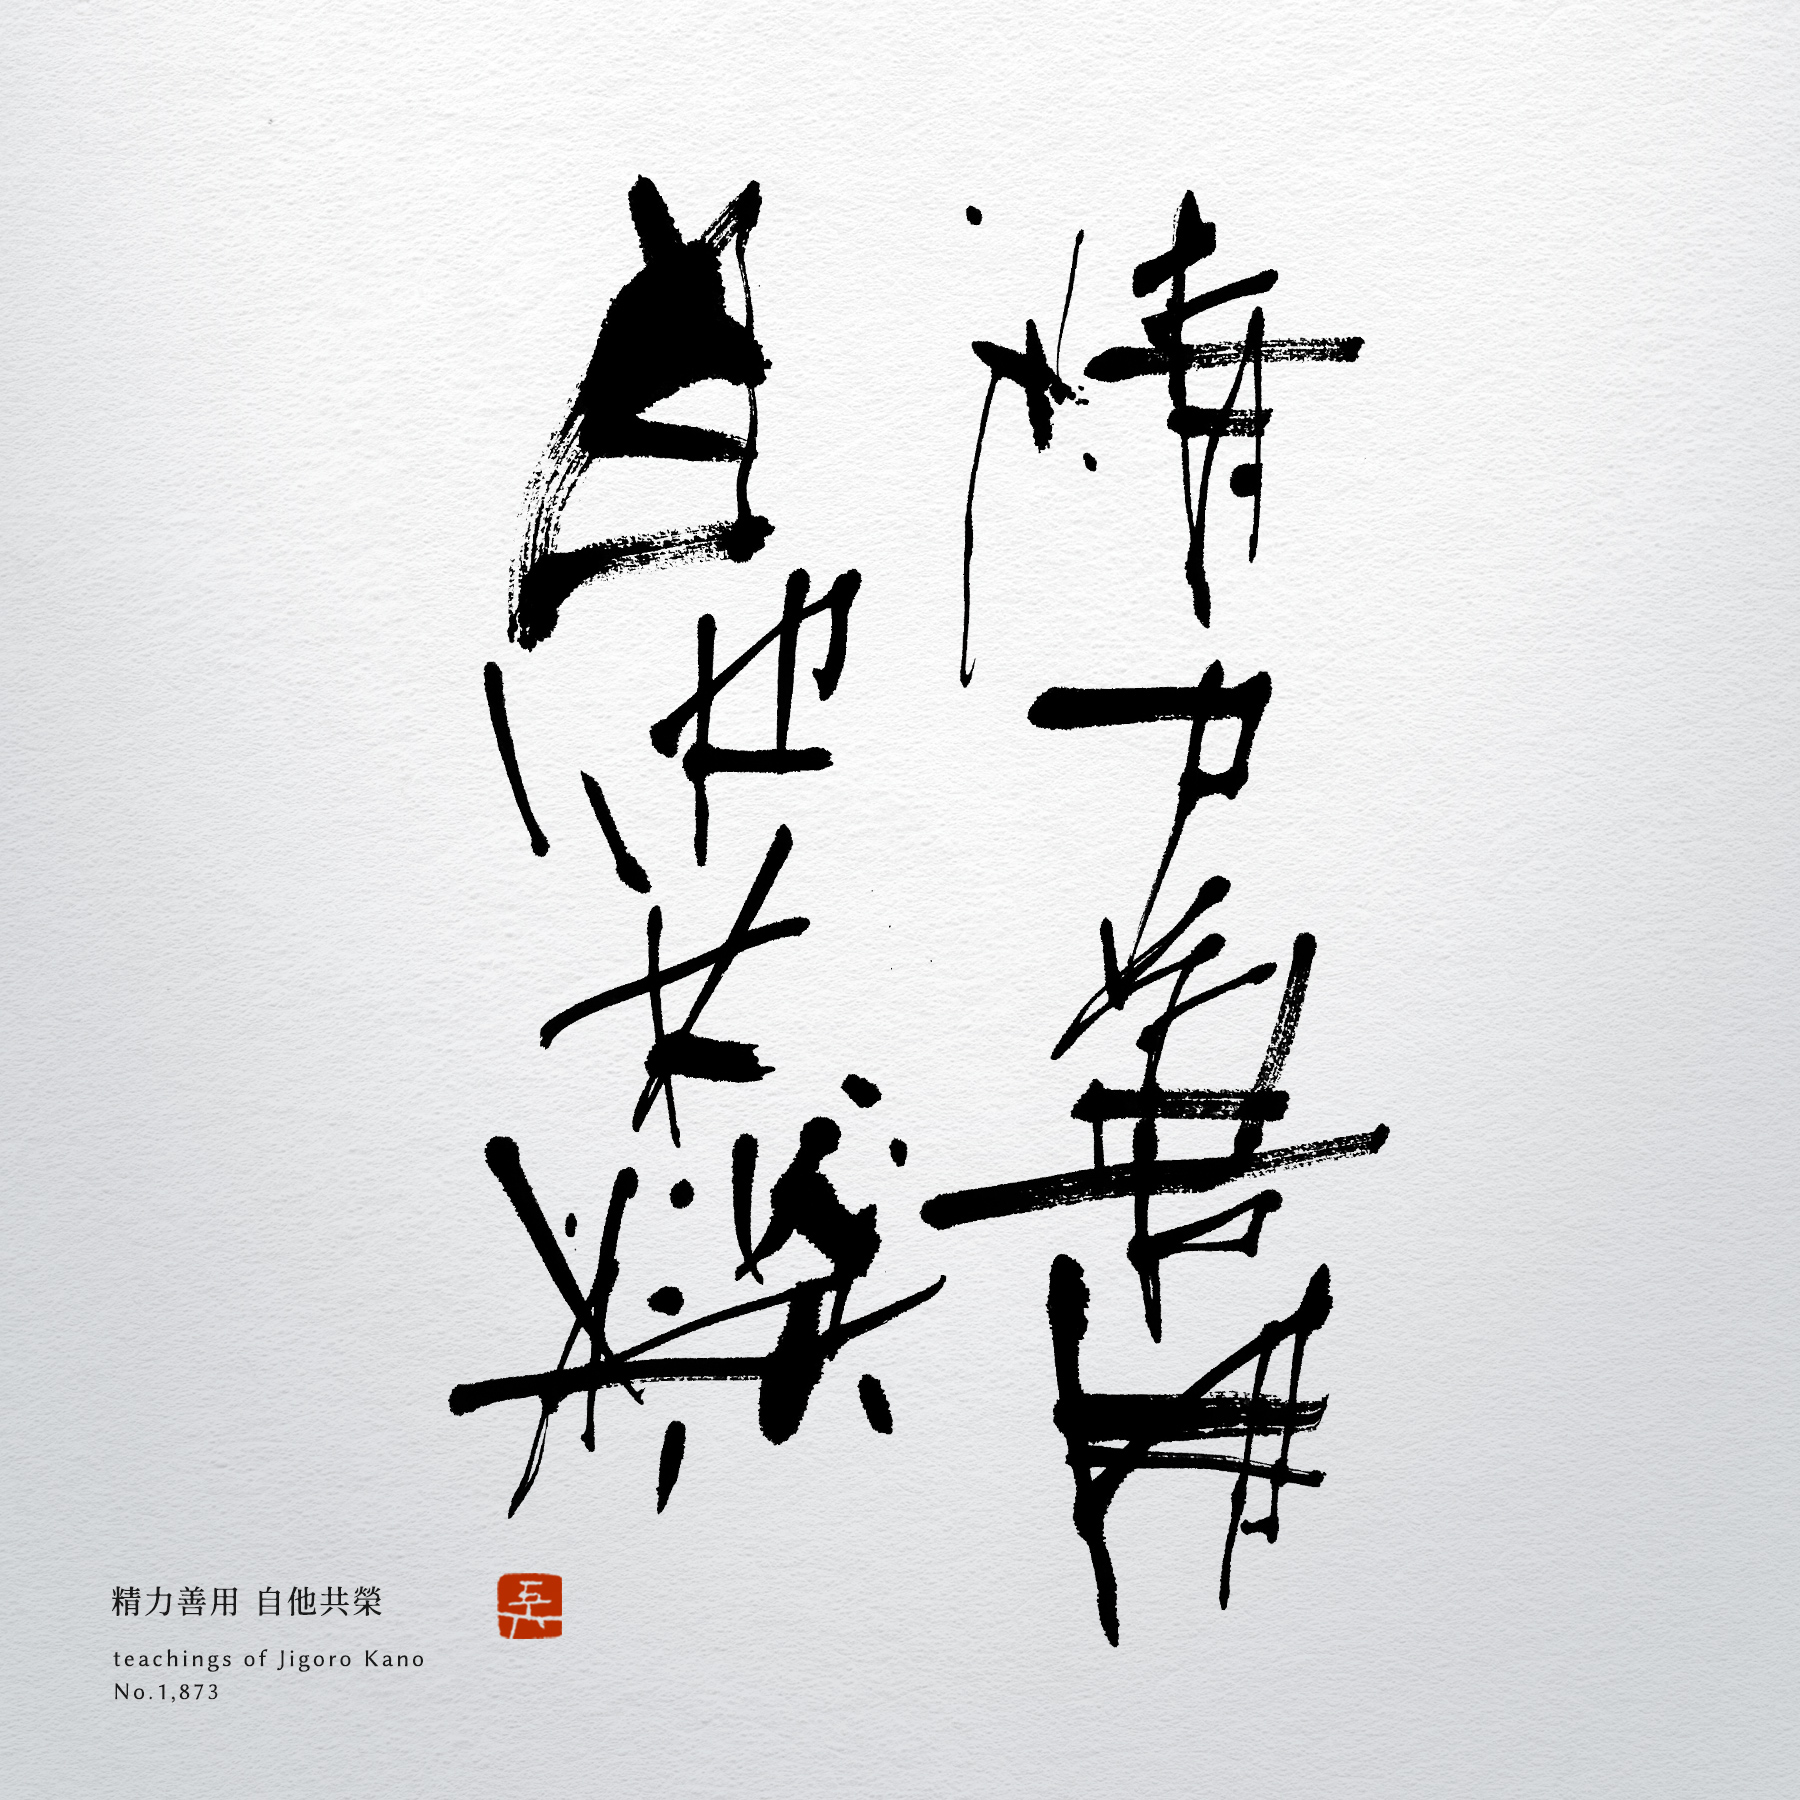 精力善用 自他共榮 | teachings of Jigoro Kano 書道作品 japaneseart japanese calligraphy 書家 田川悟郎 Goroh Tagawa